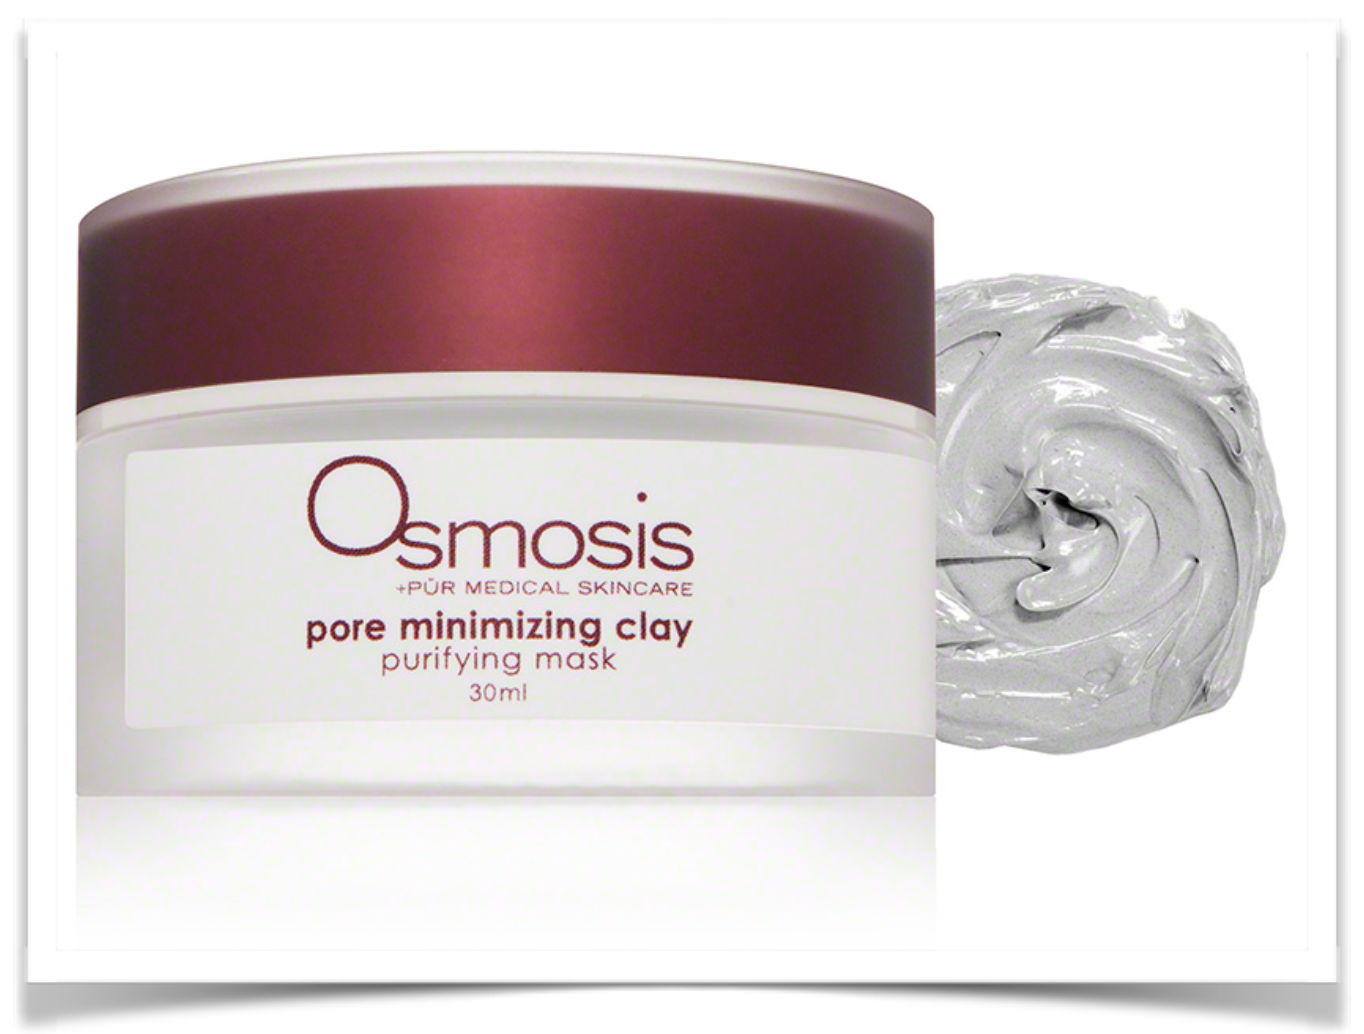 Osmosis Pore Minimizing Clay Purifying Mask